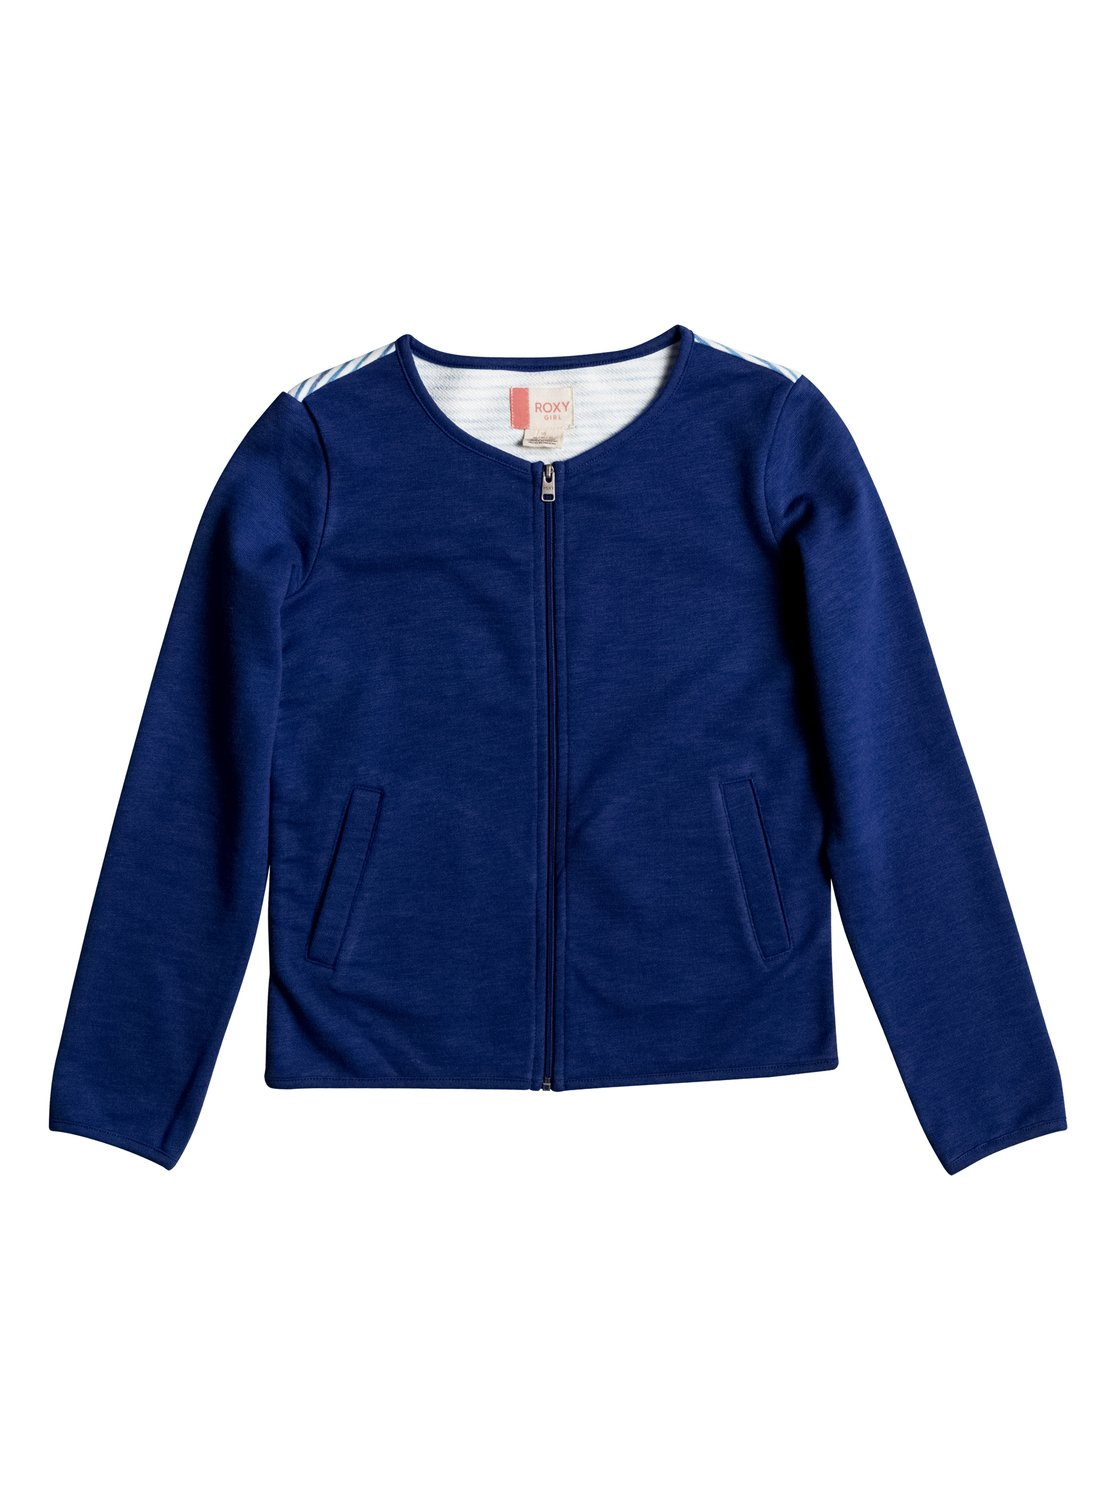 Francisco Waves - Veste zippée pour Fille - Roxy